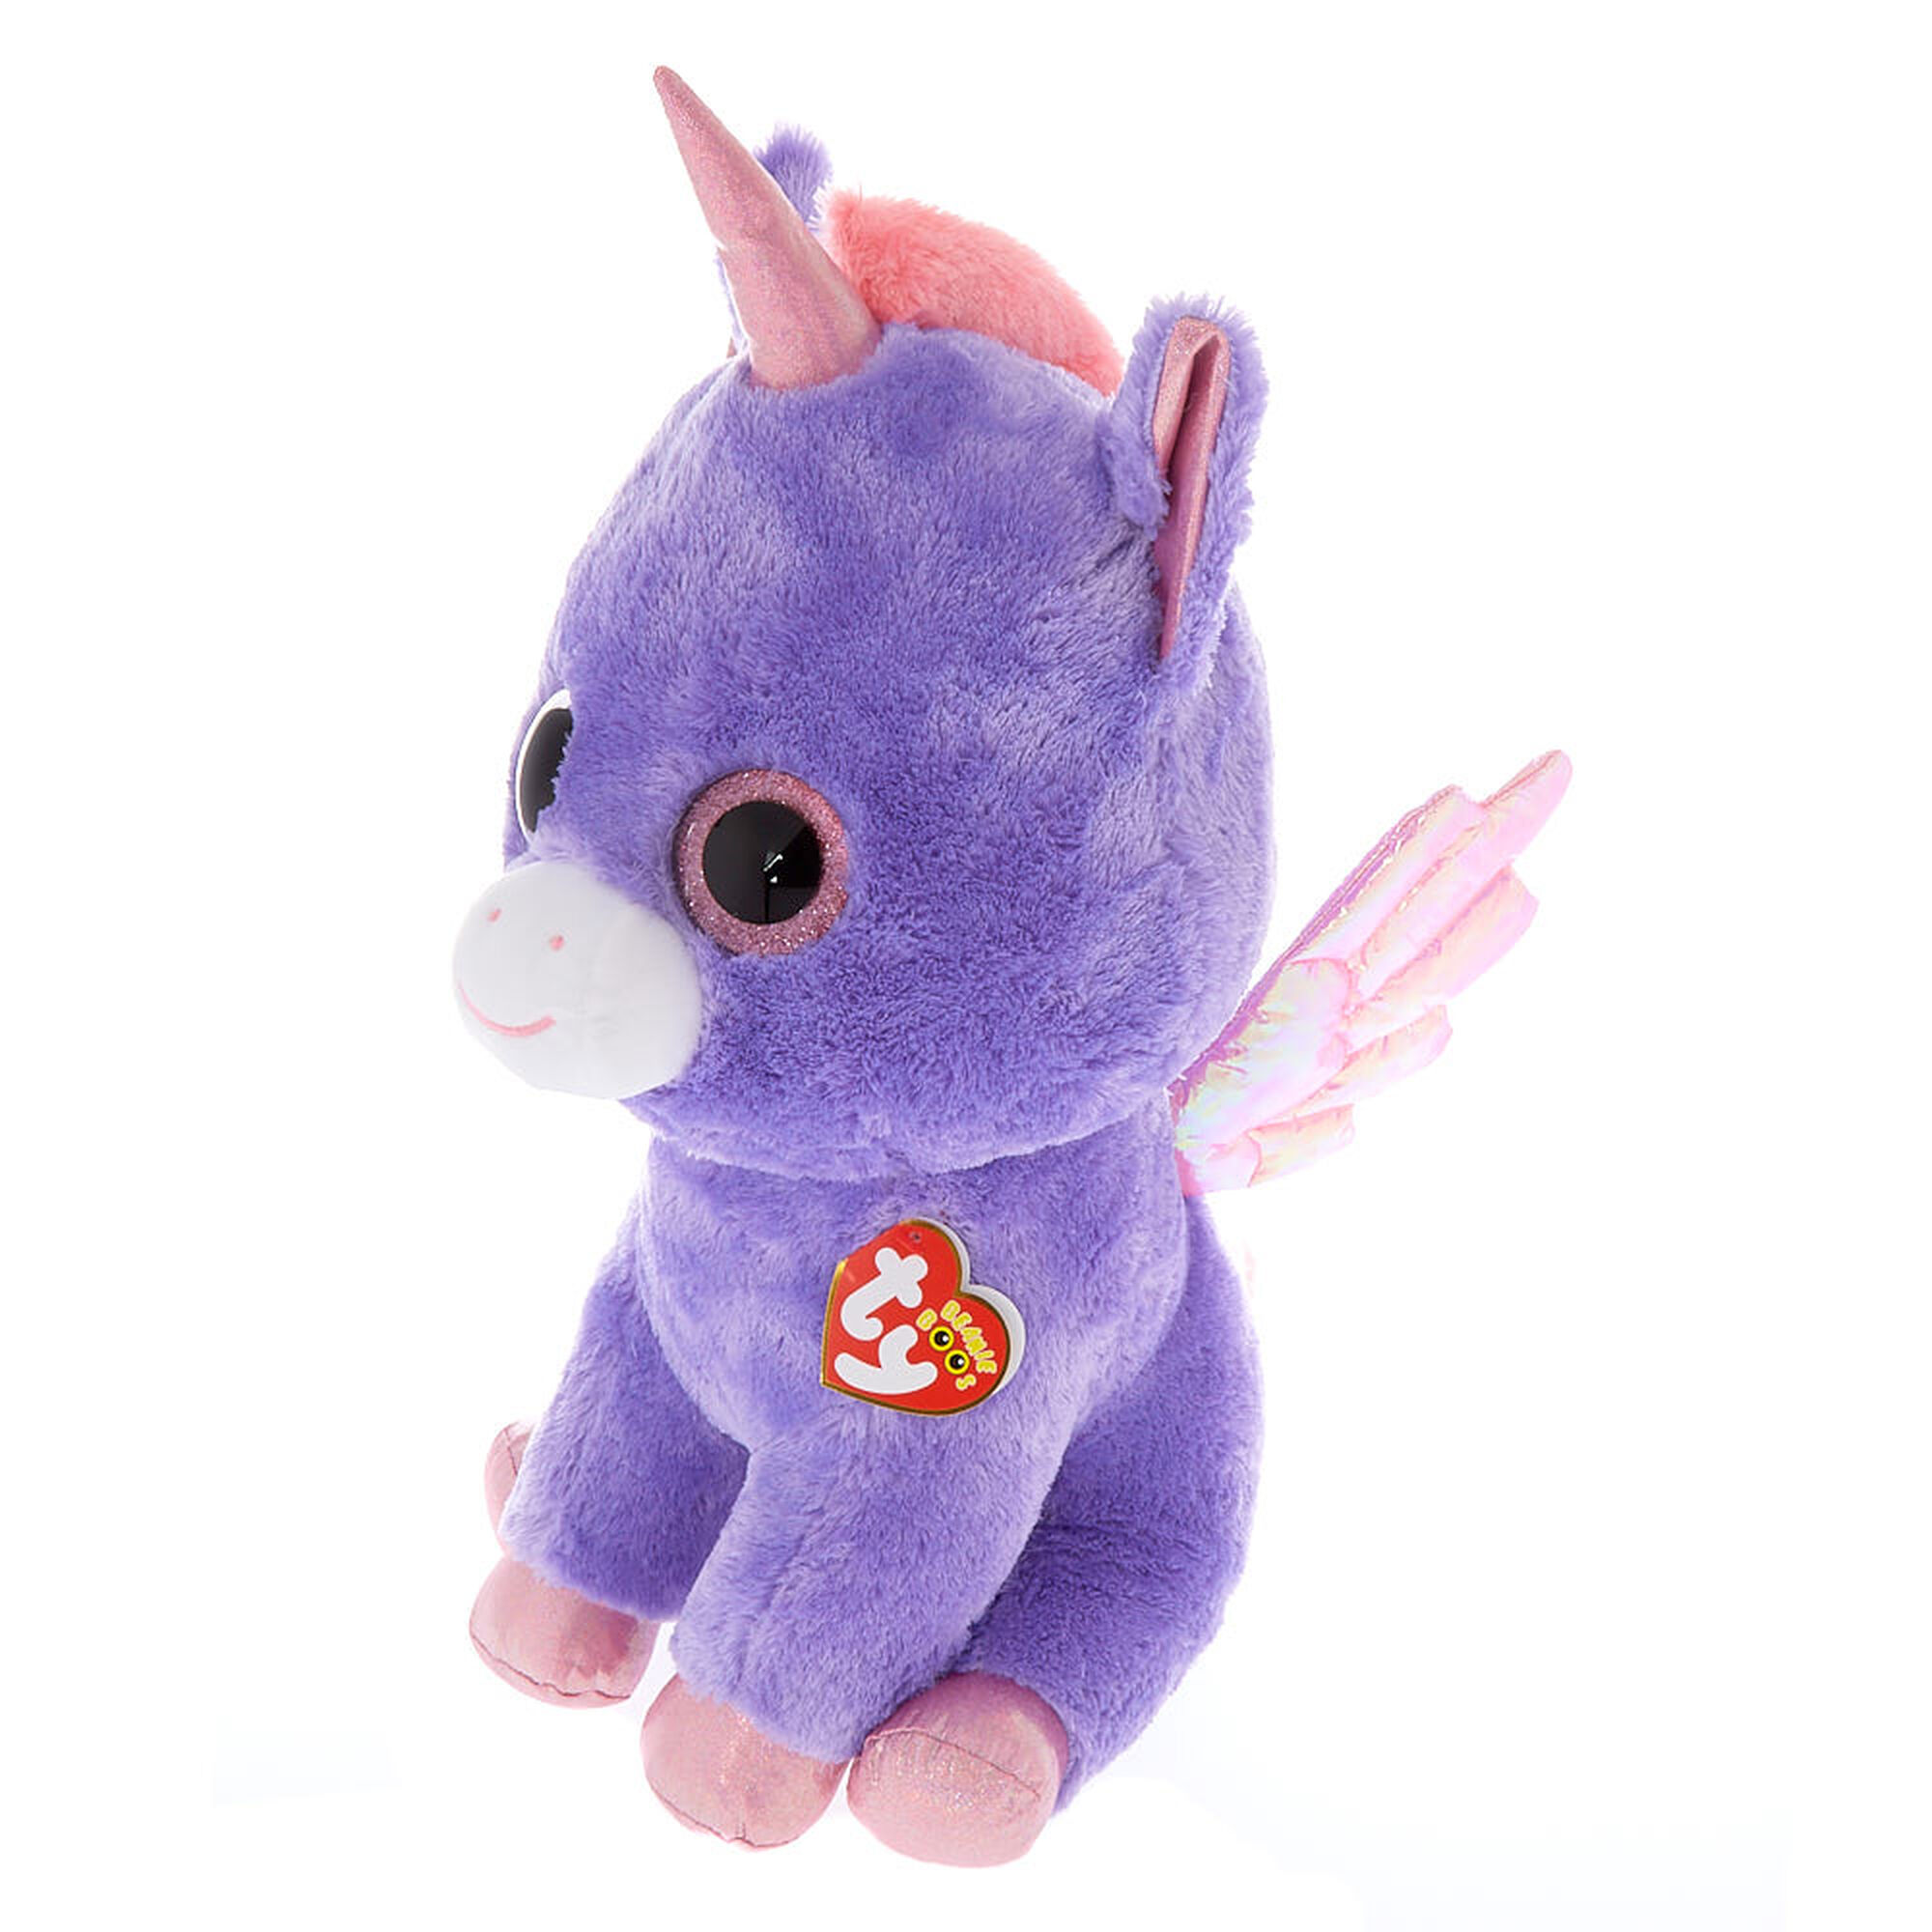 ... Ty Beanie Boo Large Athena the Pegasus Soft Toy 5ca397f5278